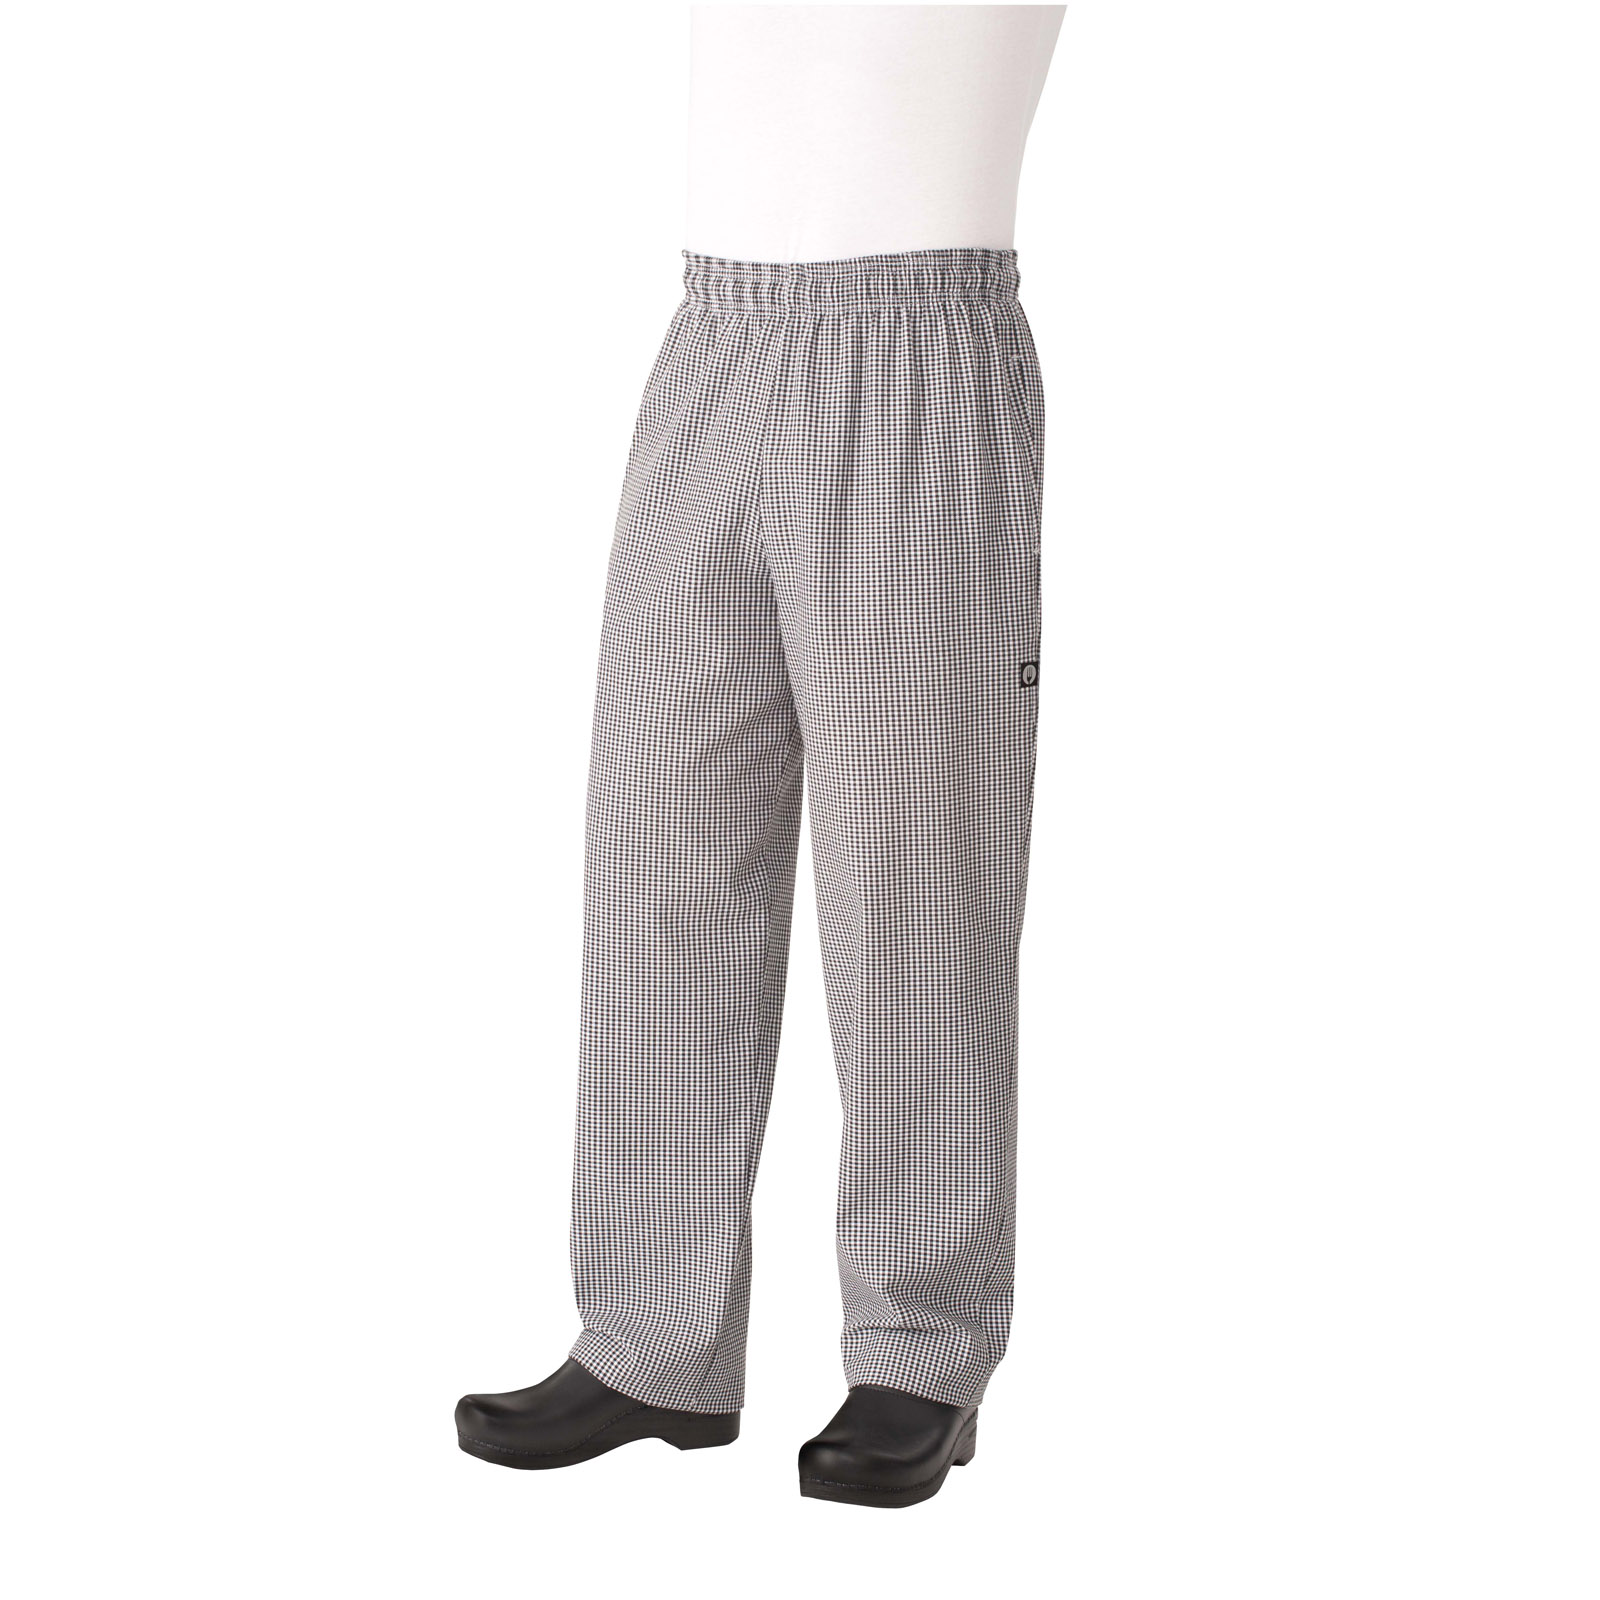 Chef Works NBCP0004XL chef's pants